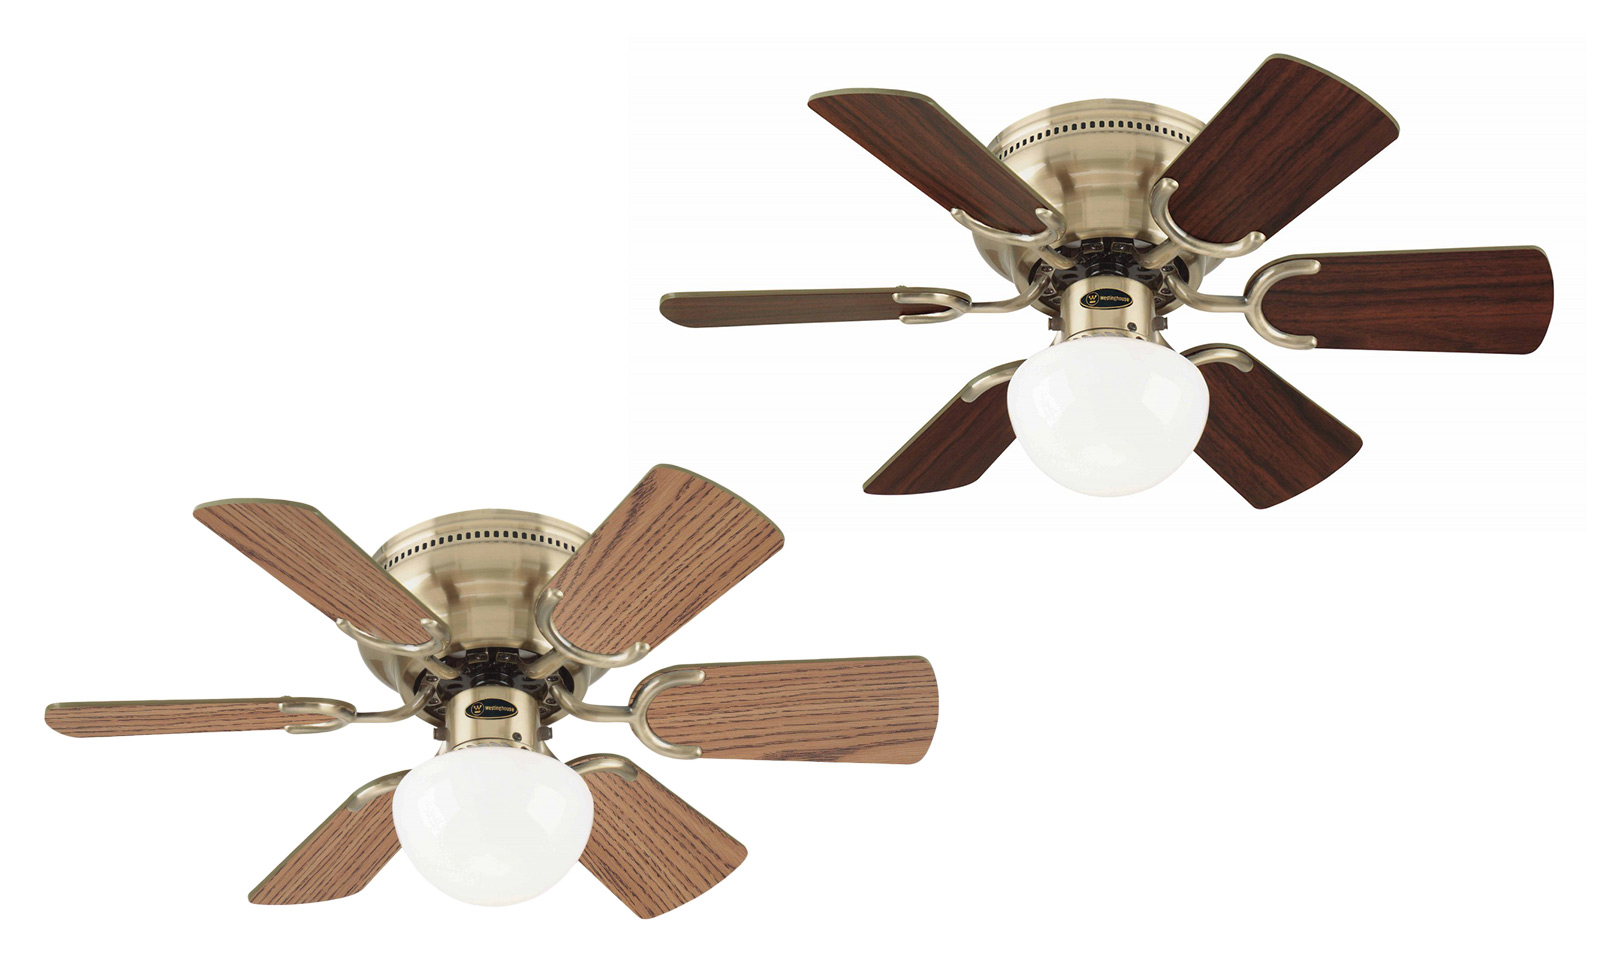 Ceiling fan petite antique brass with pull cord 76 cm 30 ceiling ceiling fan petite antique brass with pull cord 76 cm 30quot aloadofball Choice Image